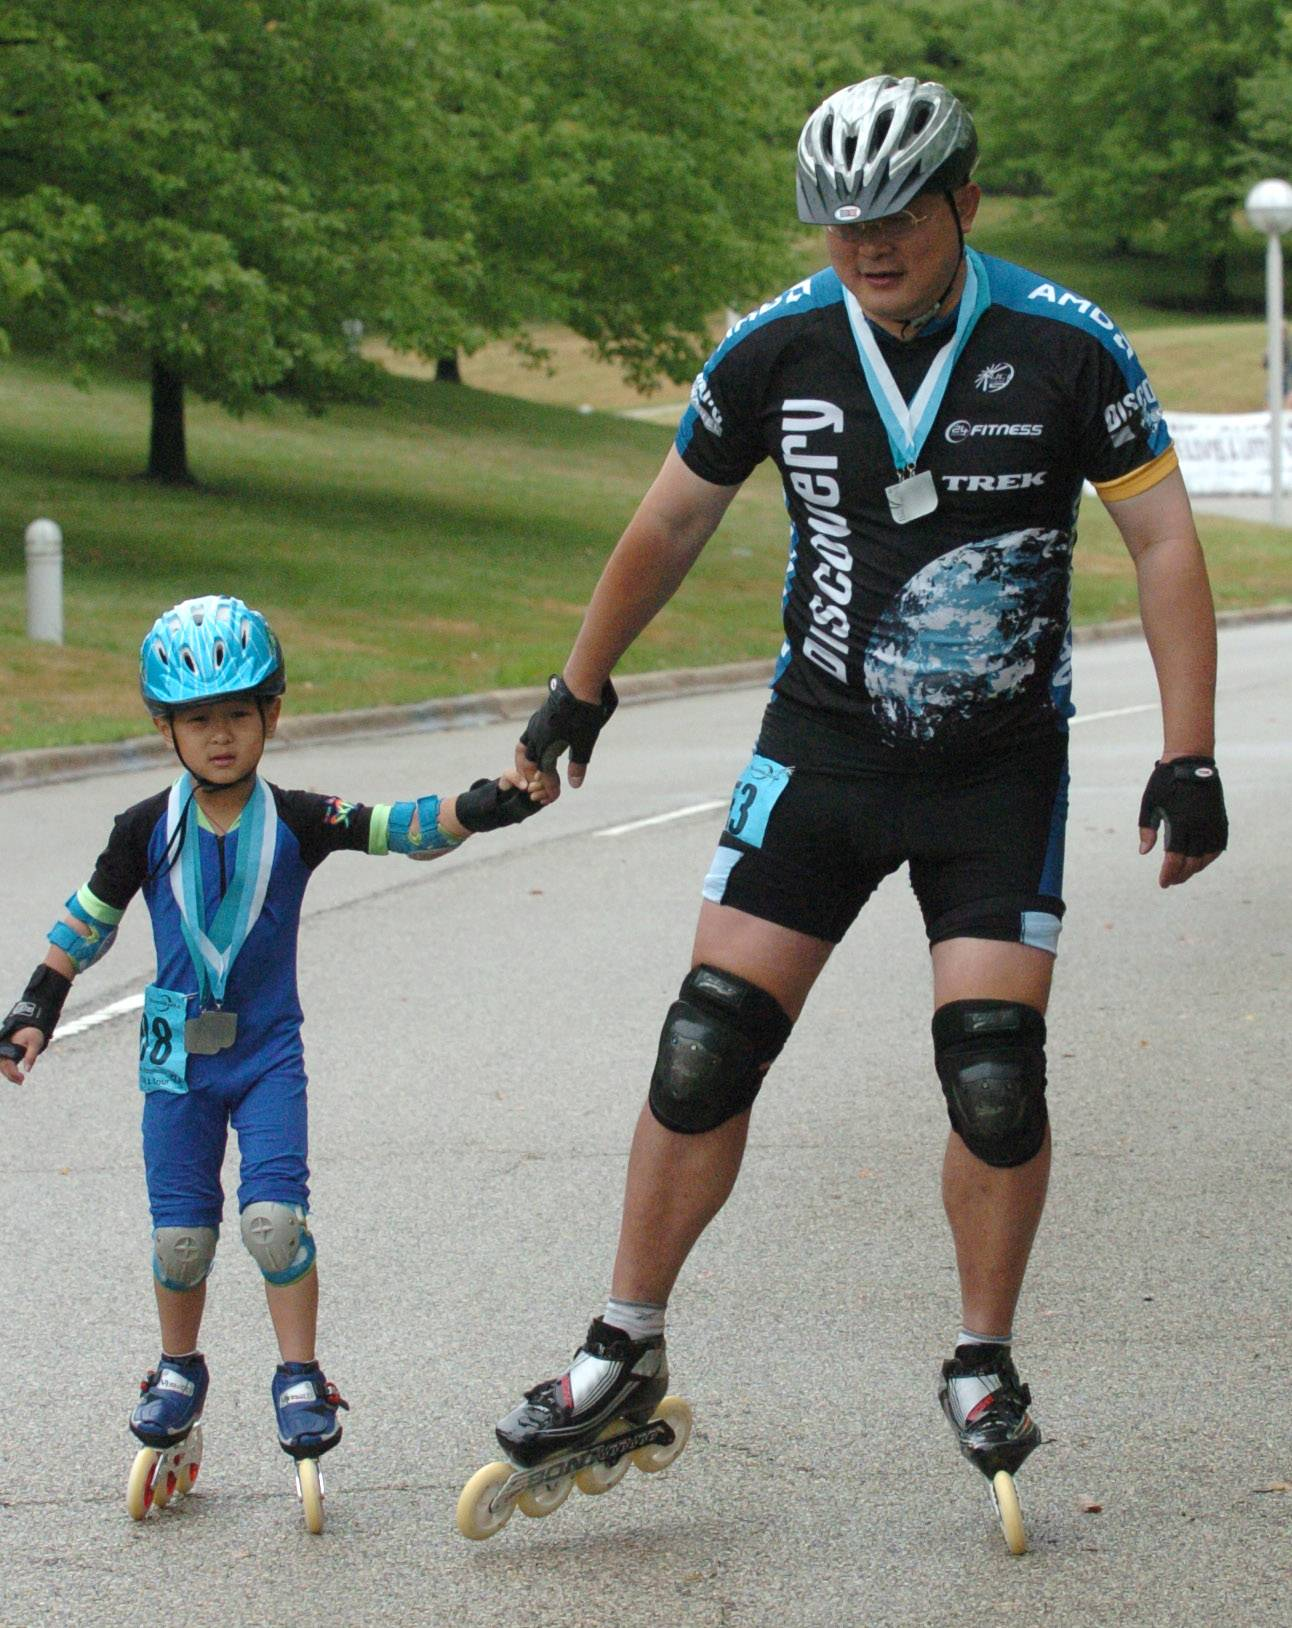 The 2011 Alexian Brothers Fitness for America Sports Festival in Hoffman Estates was a family affair for Shu Li and his son, Jaylin Li. The fest returns for its sixth edition this weekend.